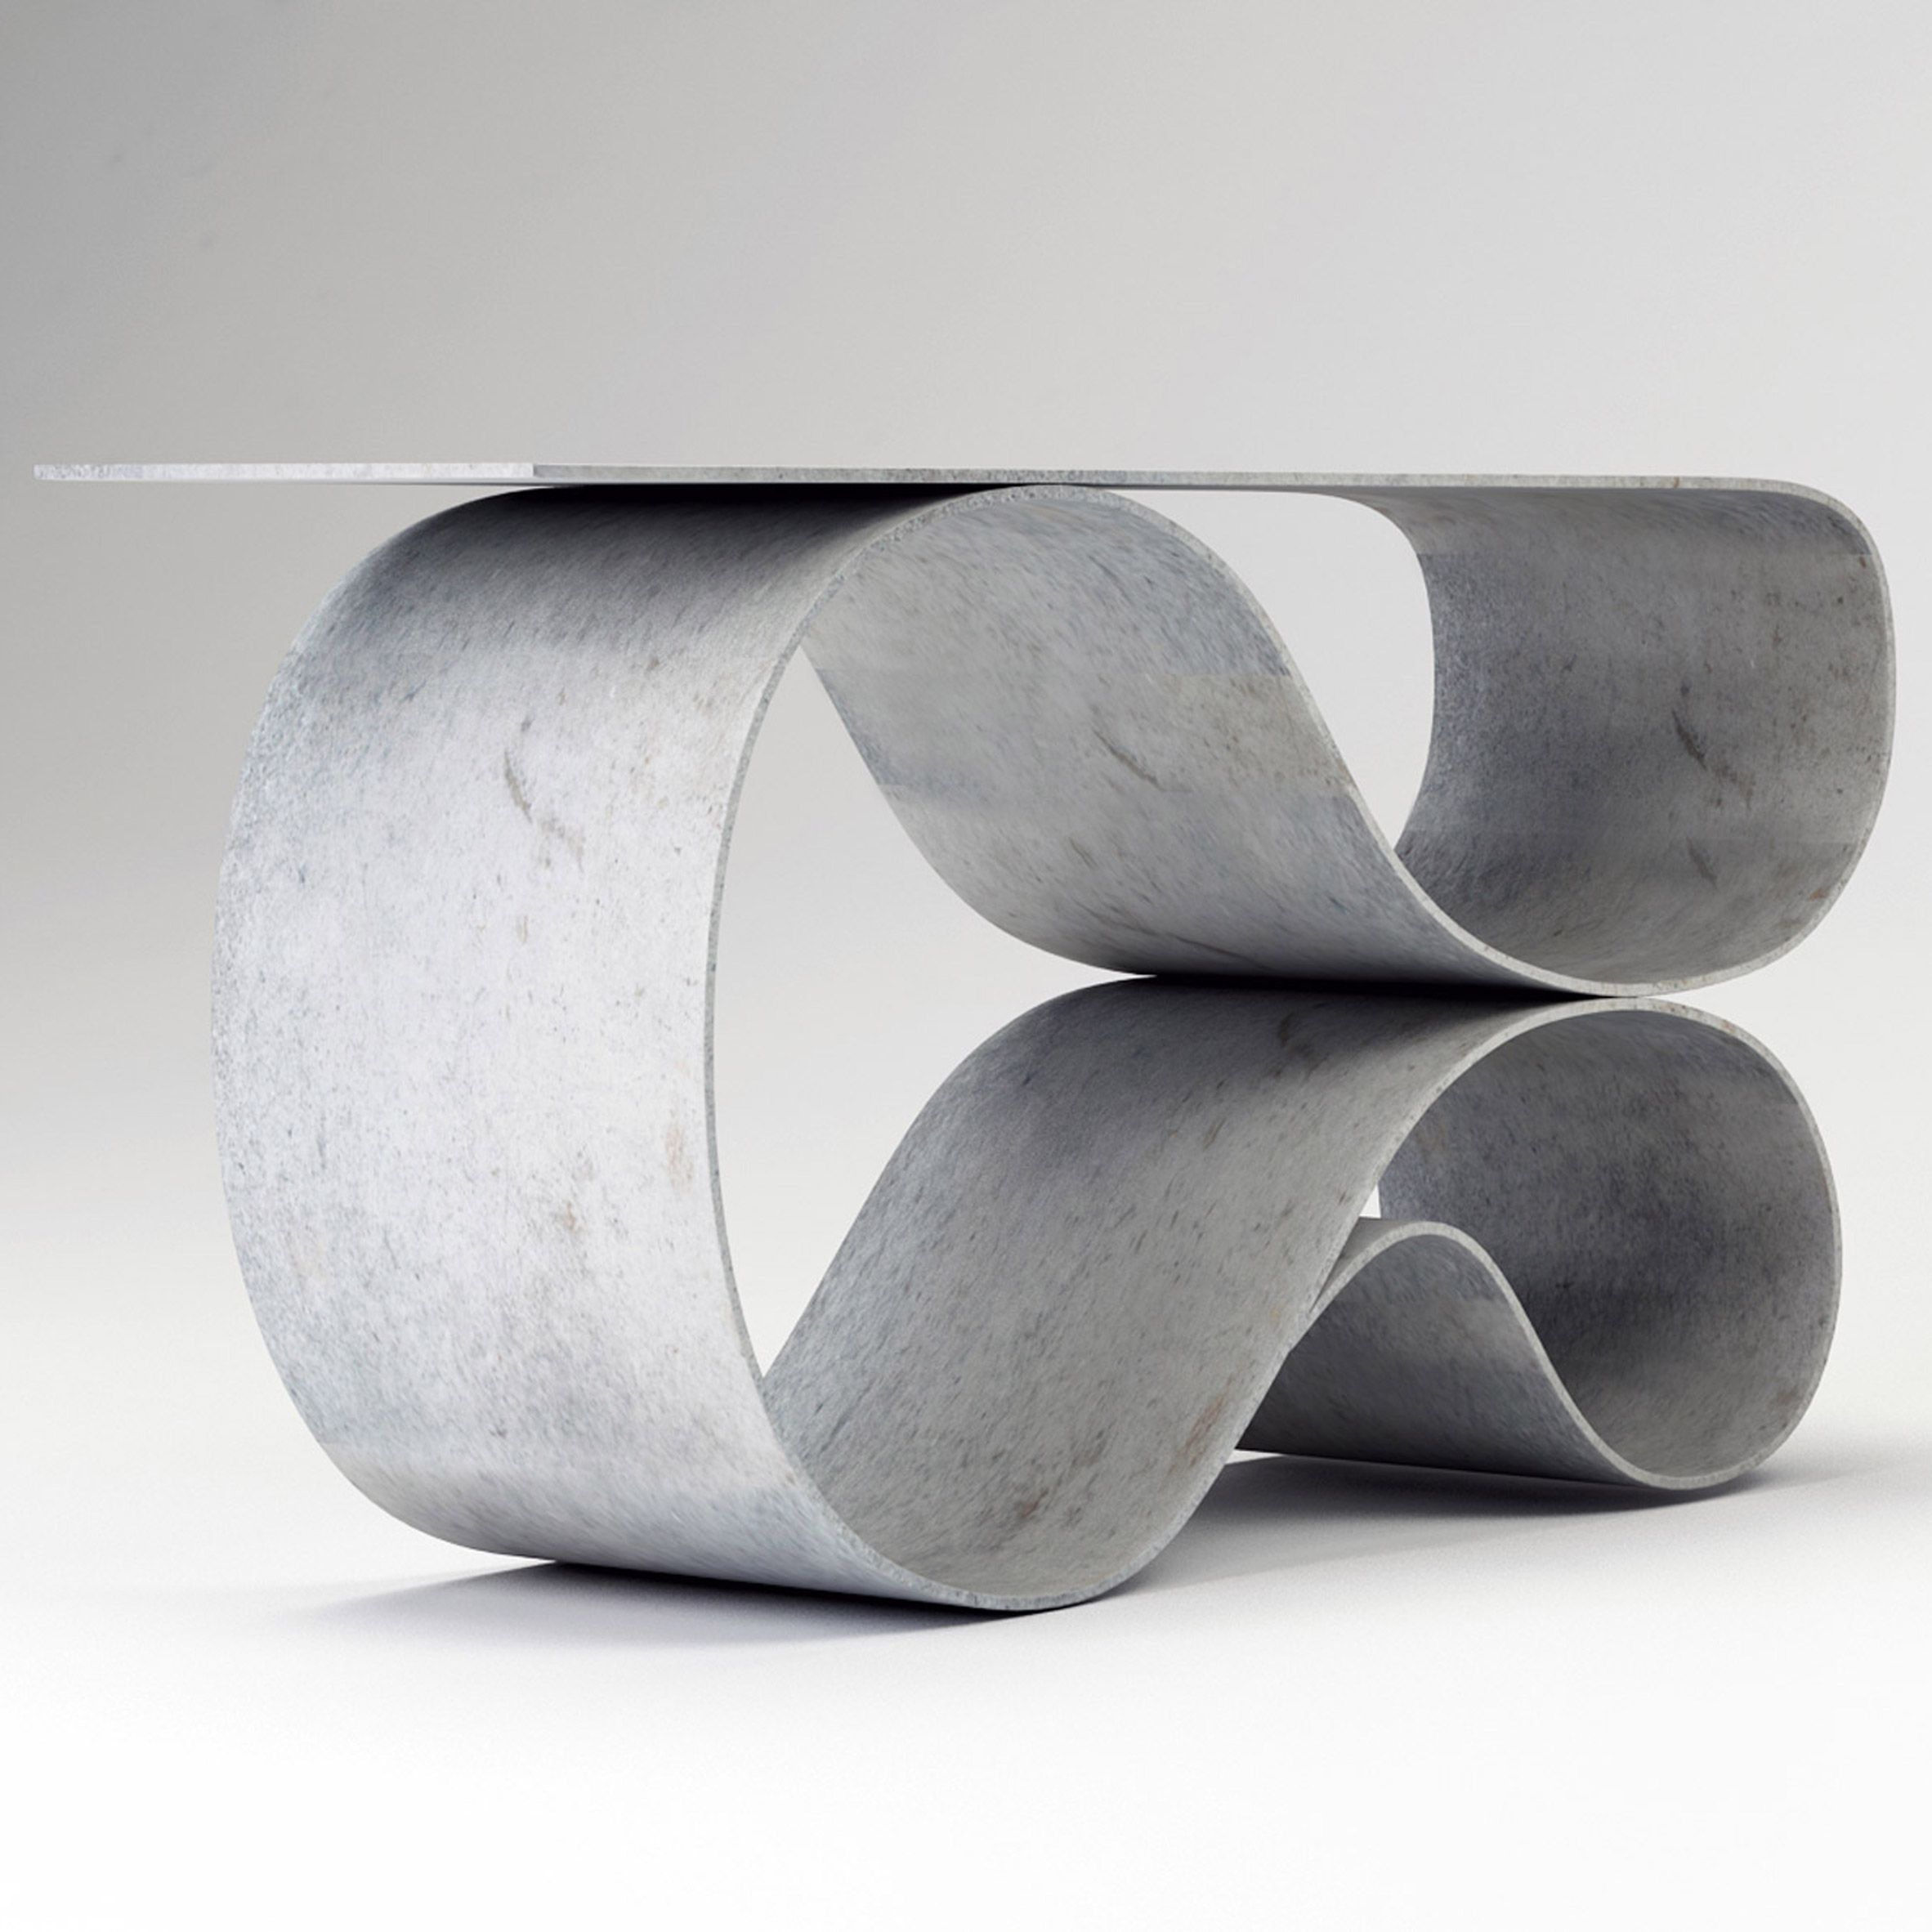 Flexible concrete cloth has made possible the swooping shapes of ...